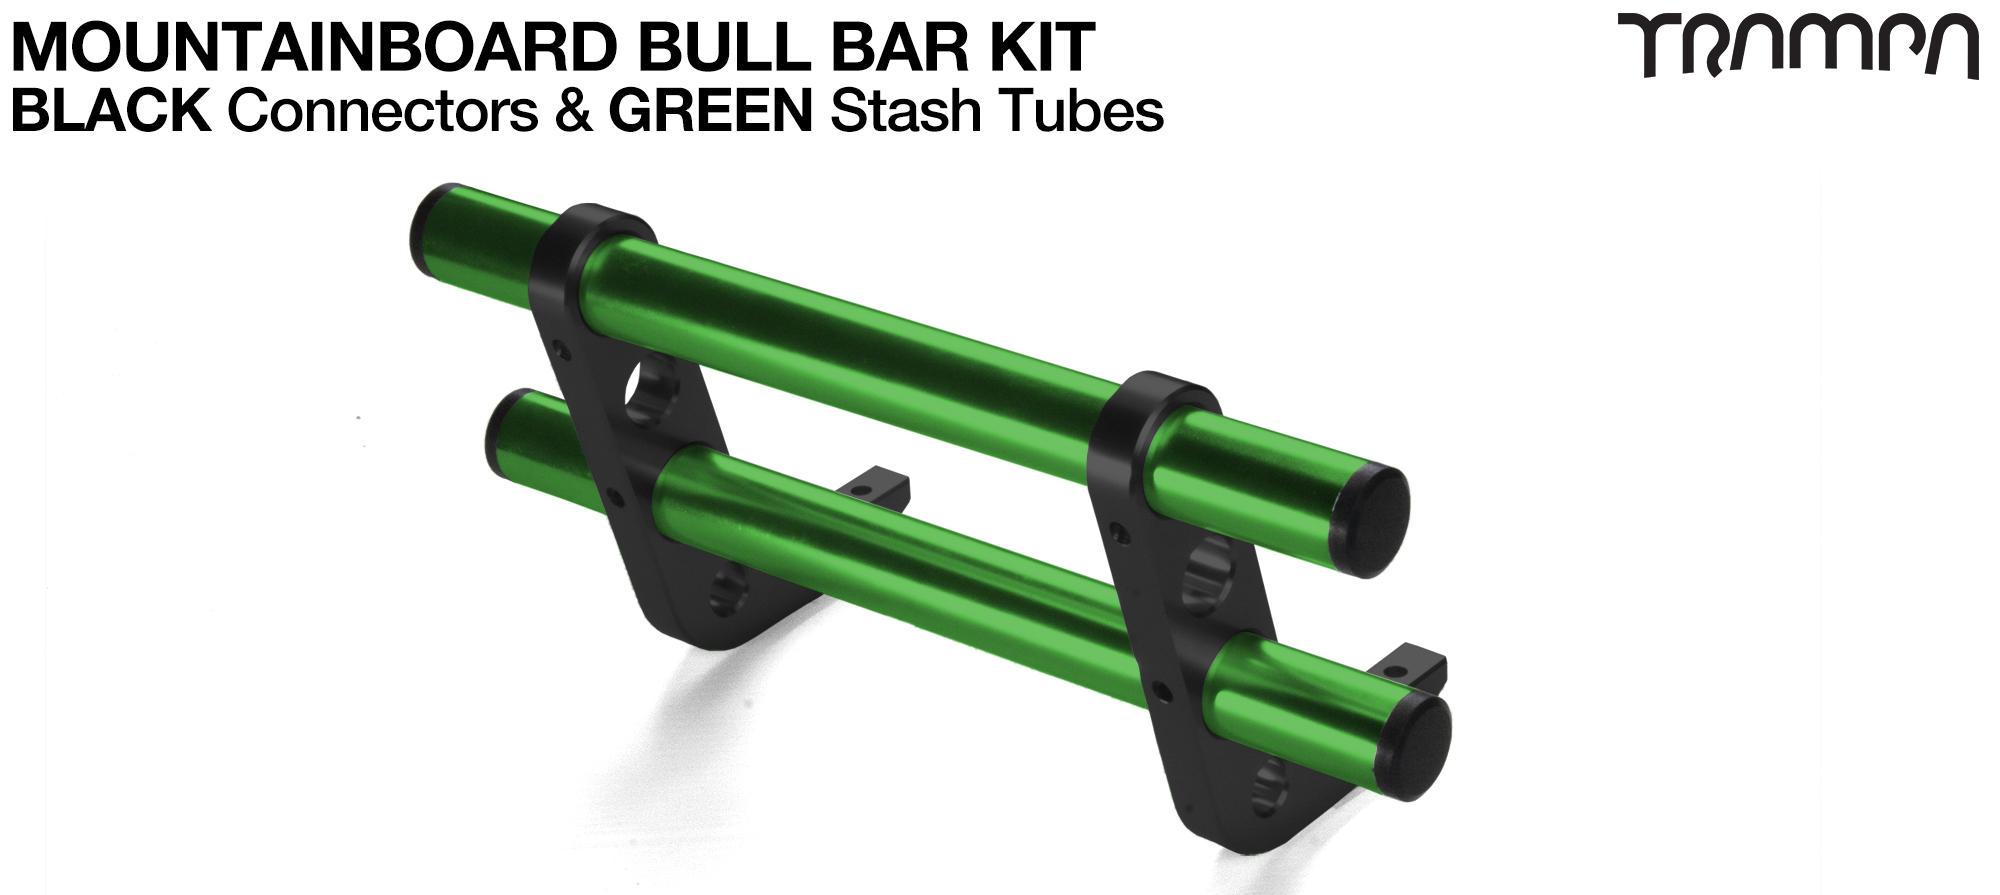 BLACK Uprights & GREEN Crossbar BULL BARS for MOUNTAINBOARDS using T6 Heat Treated CNC'd AluminIum Clamps, Hollow Aluminium Stash Tubes with Rubber end bungs